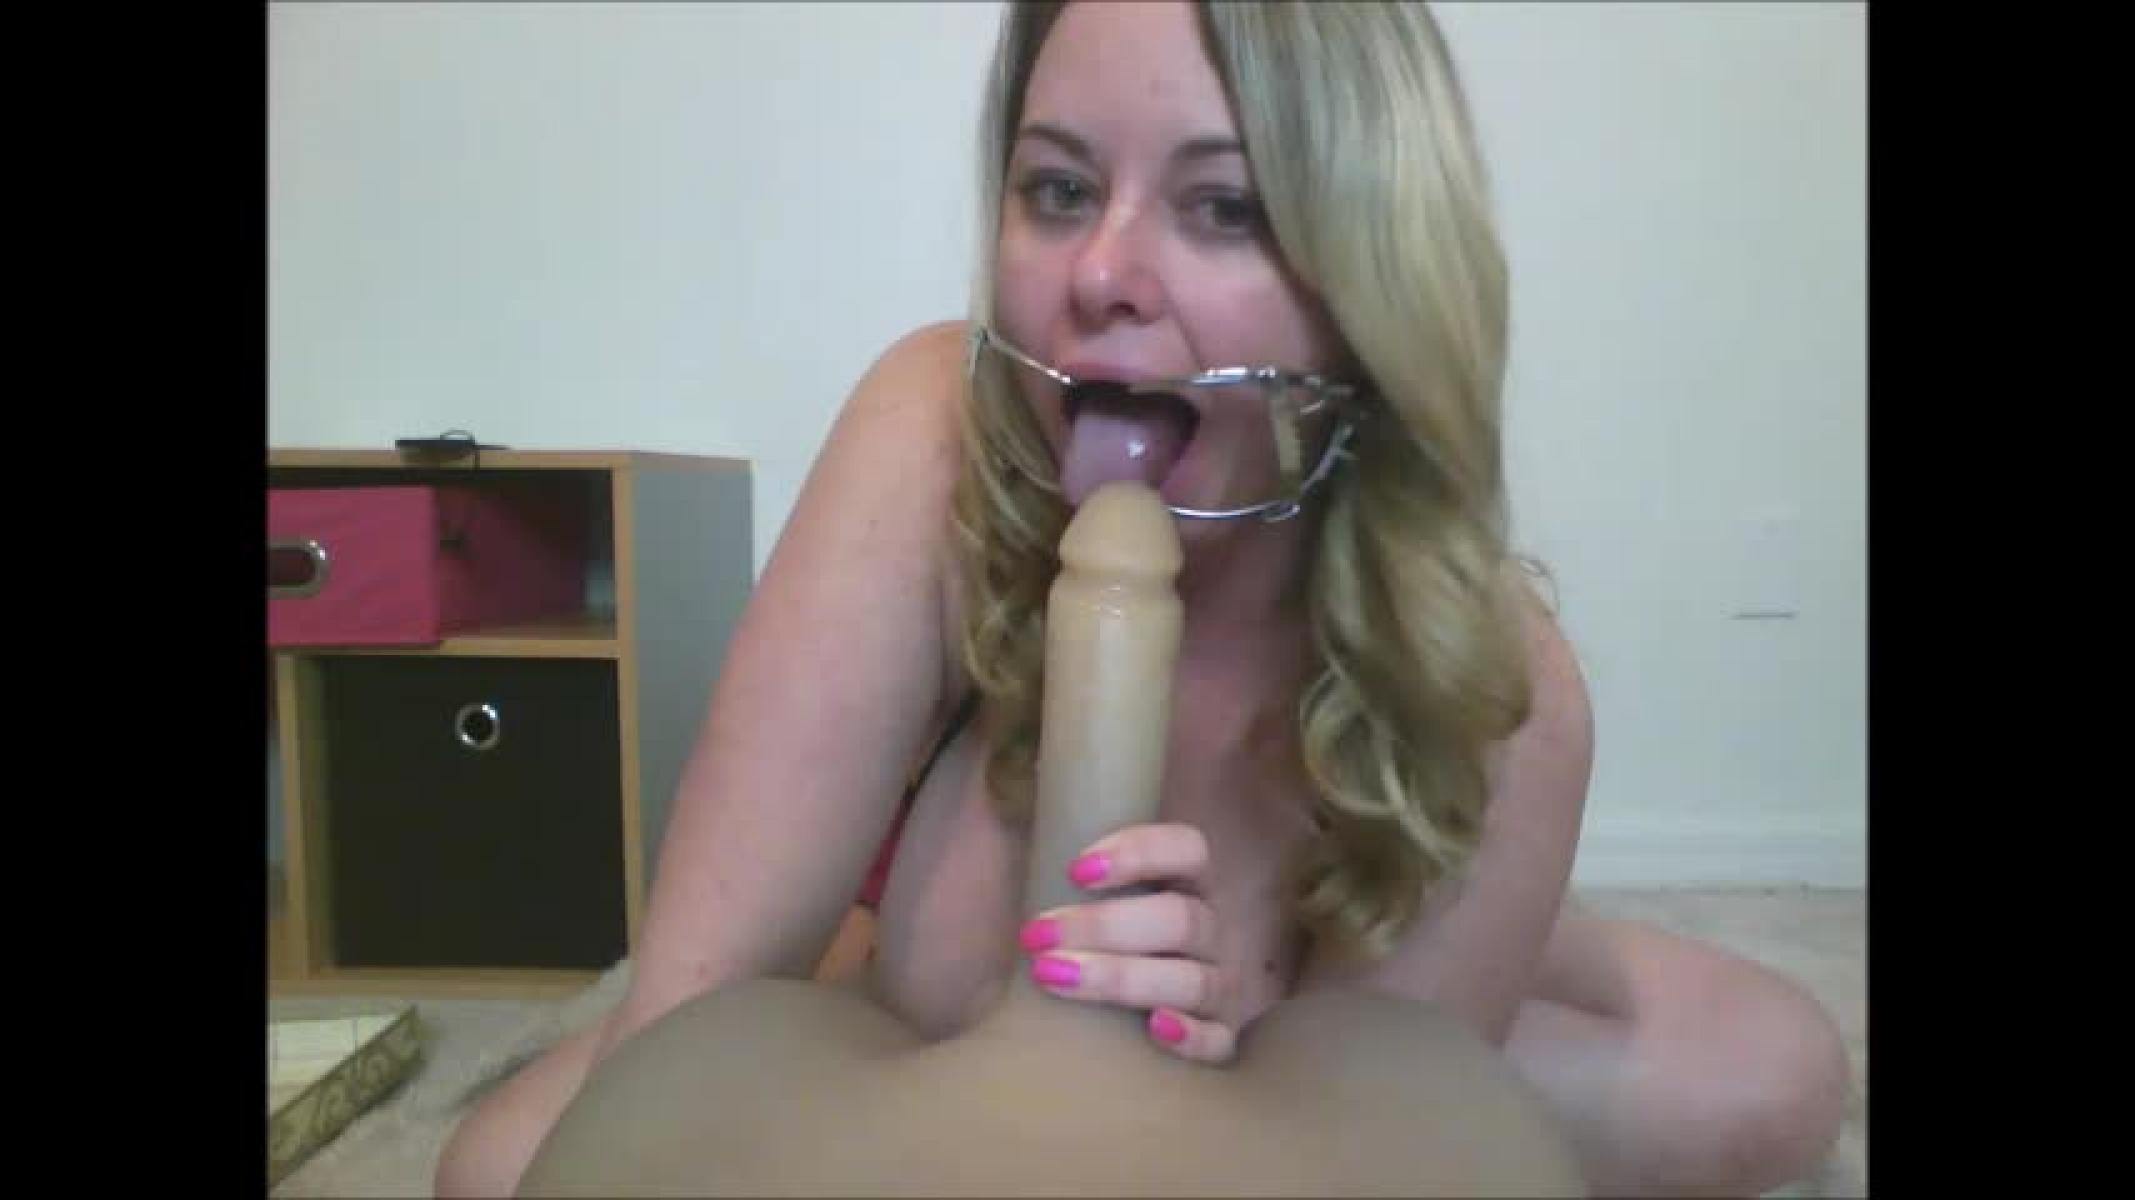 Face fucked by mouth dildo — photo 12